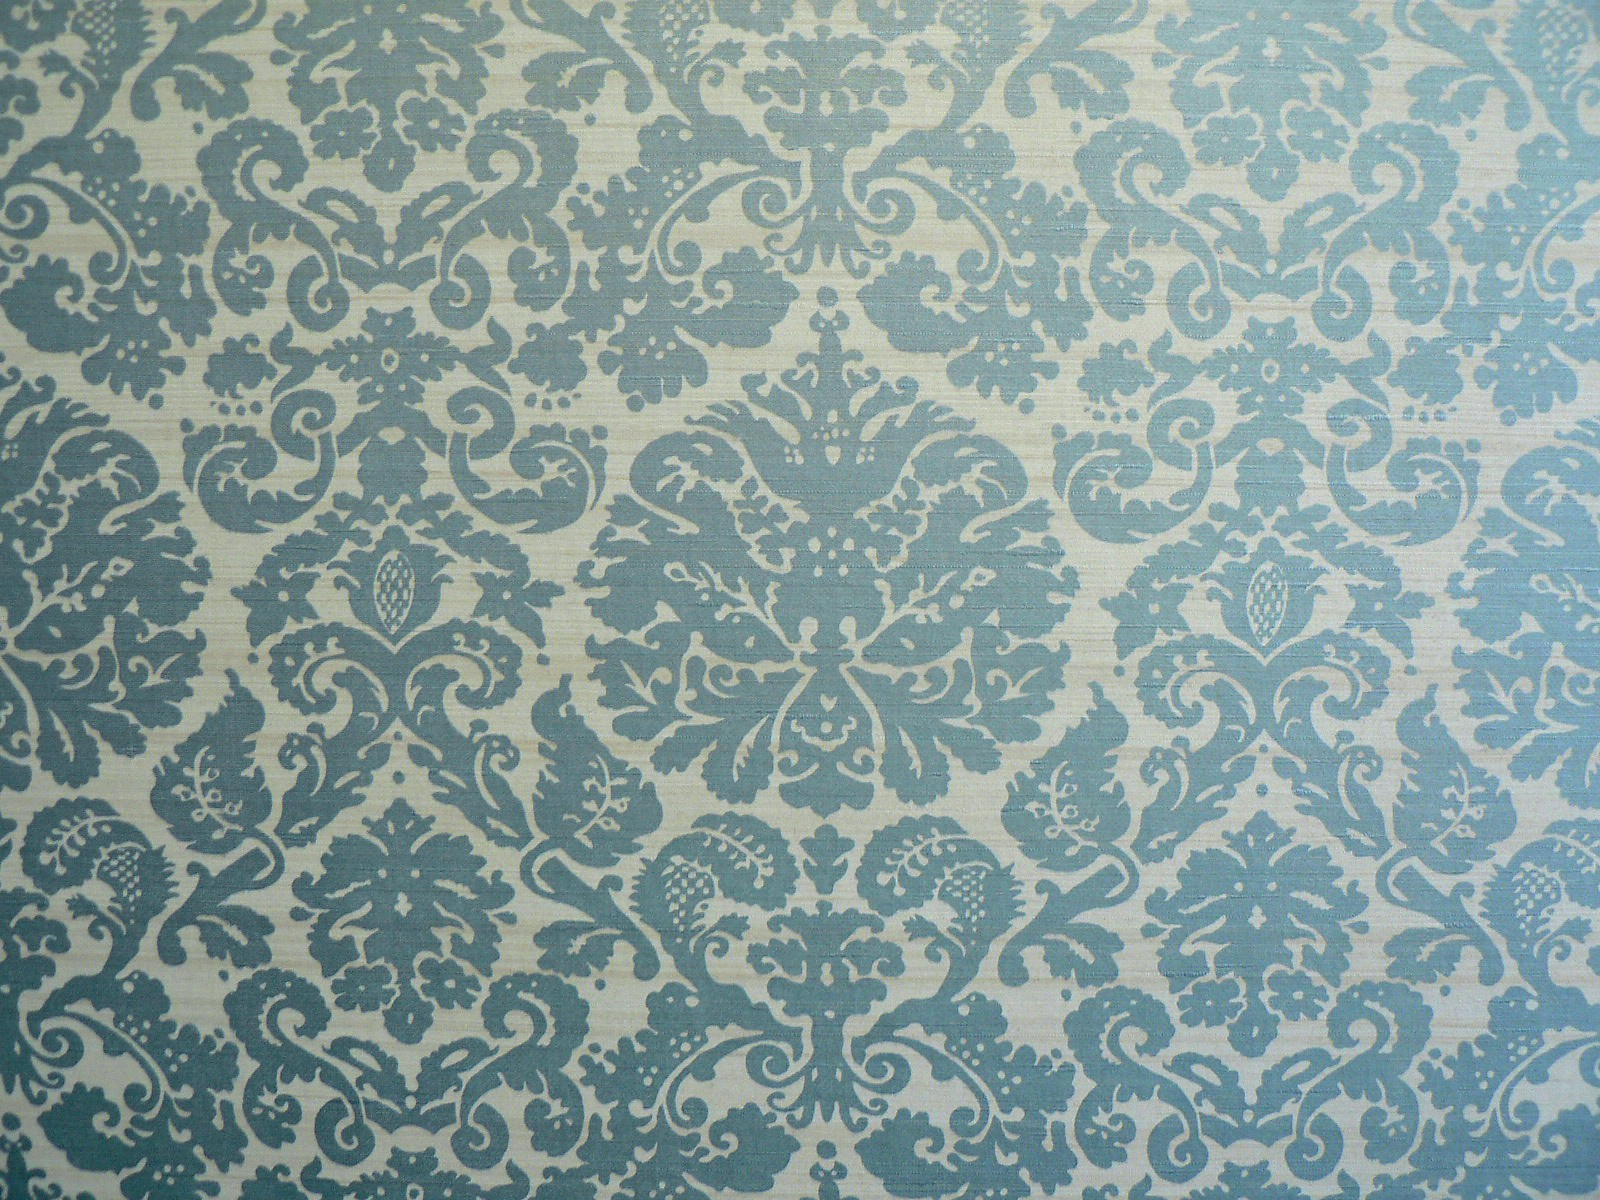 Wallpaper Pattern Vintage